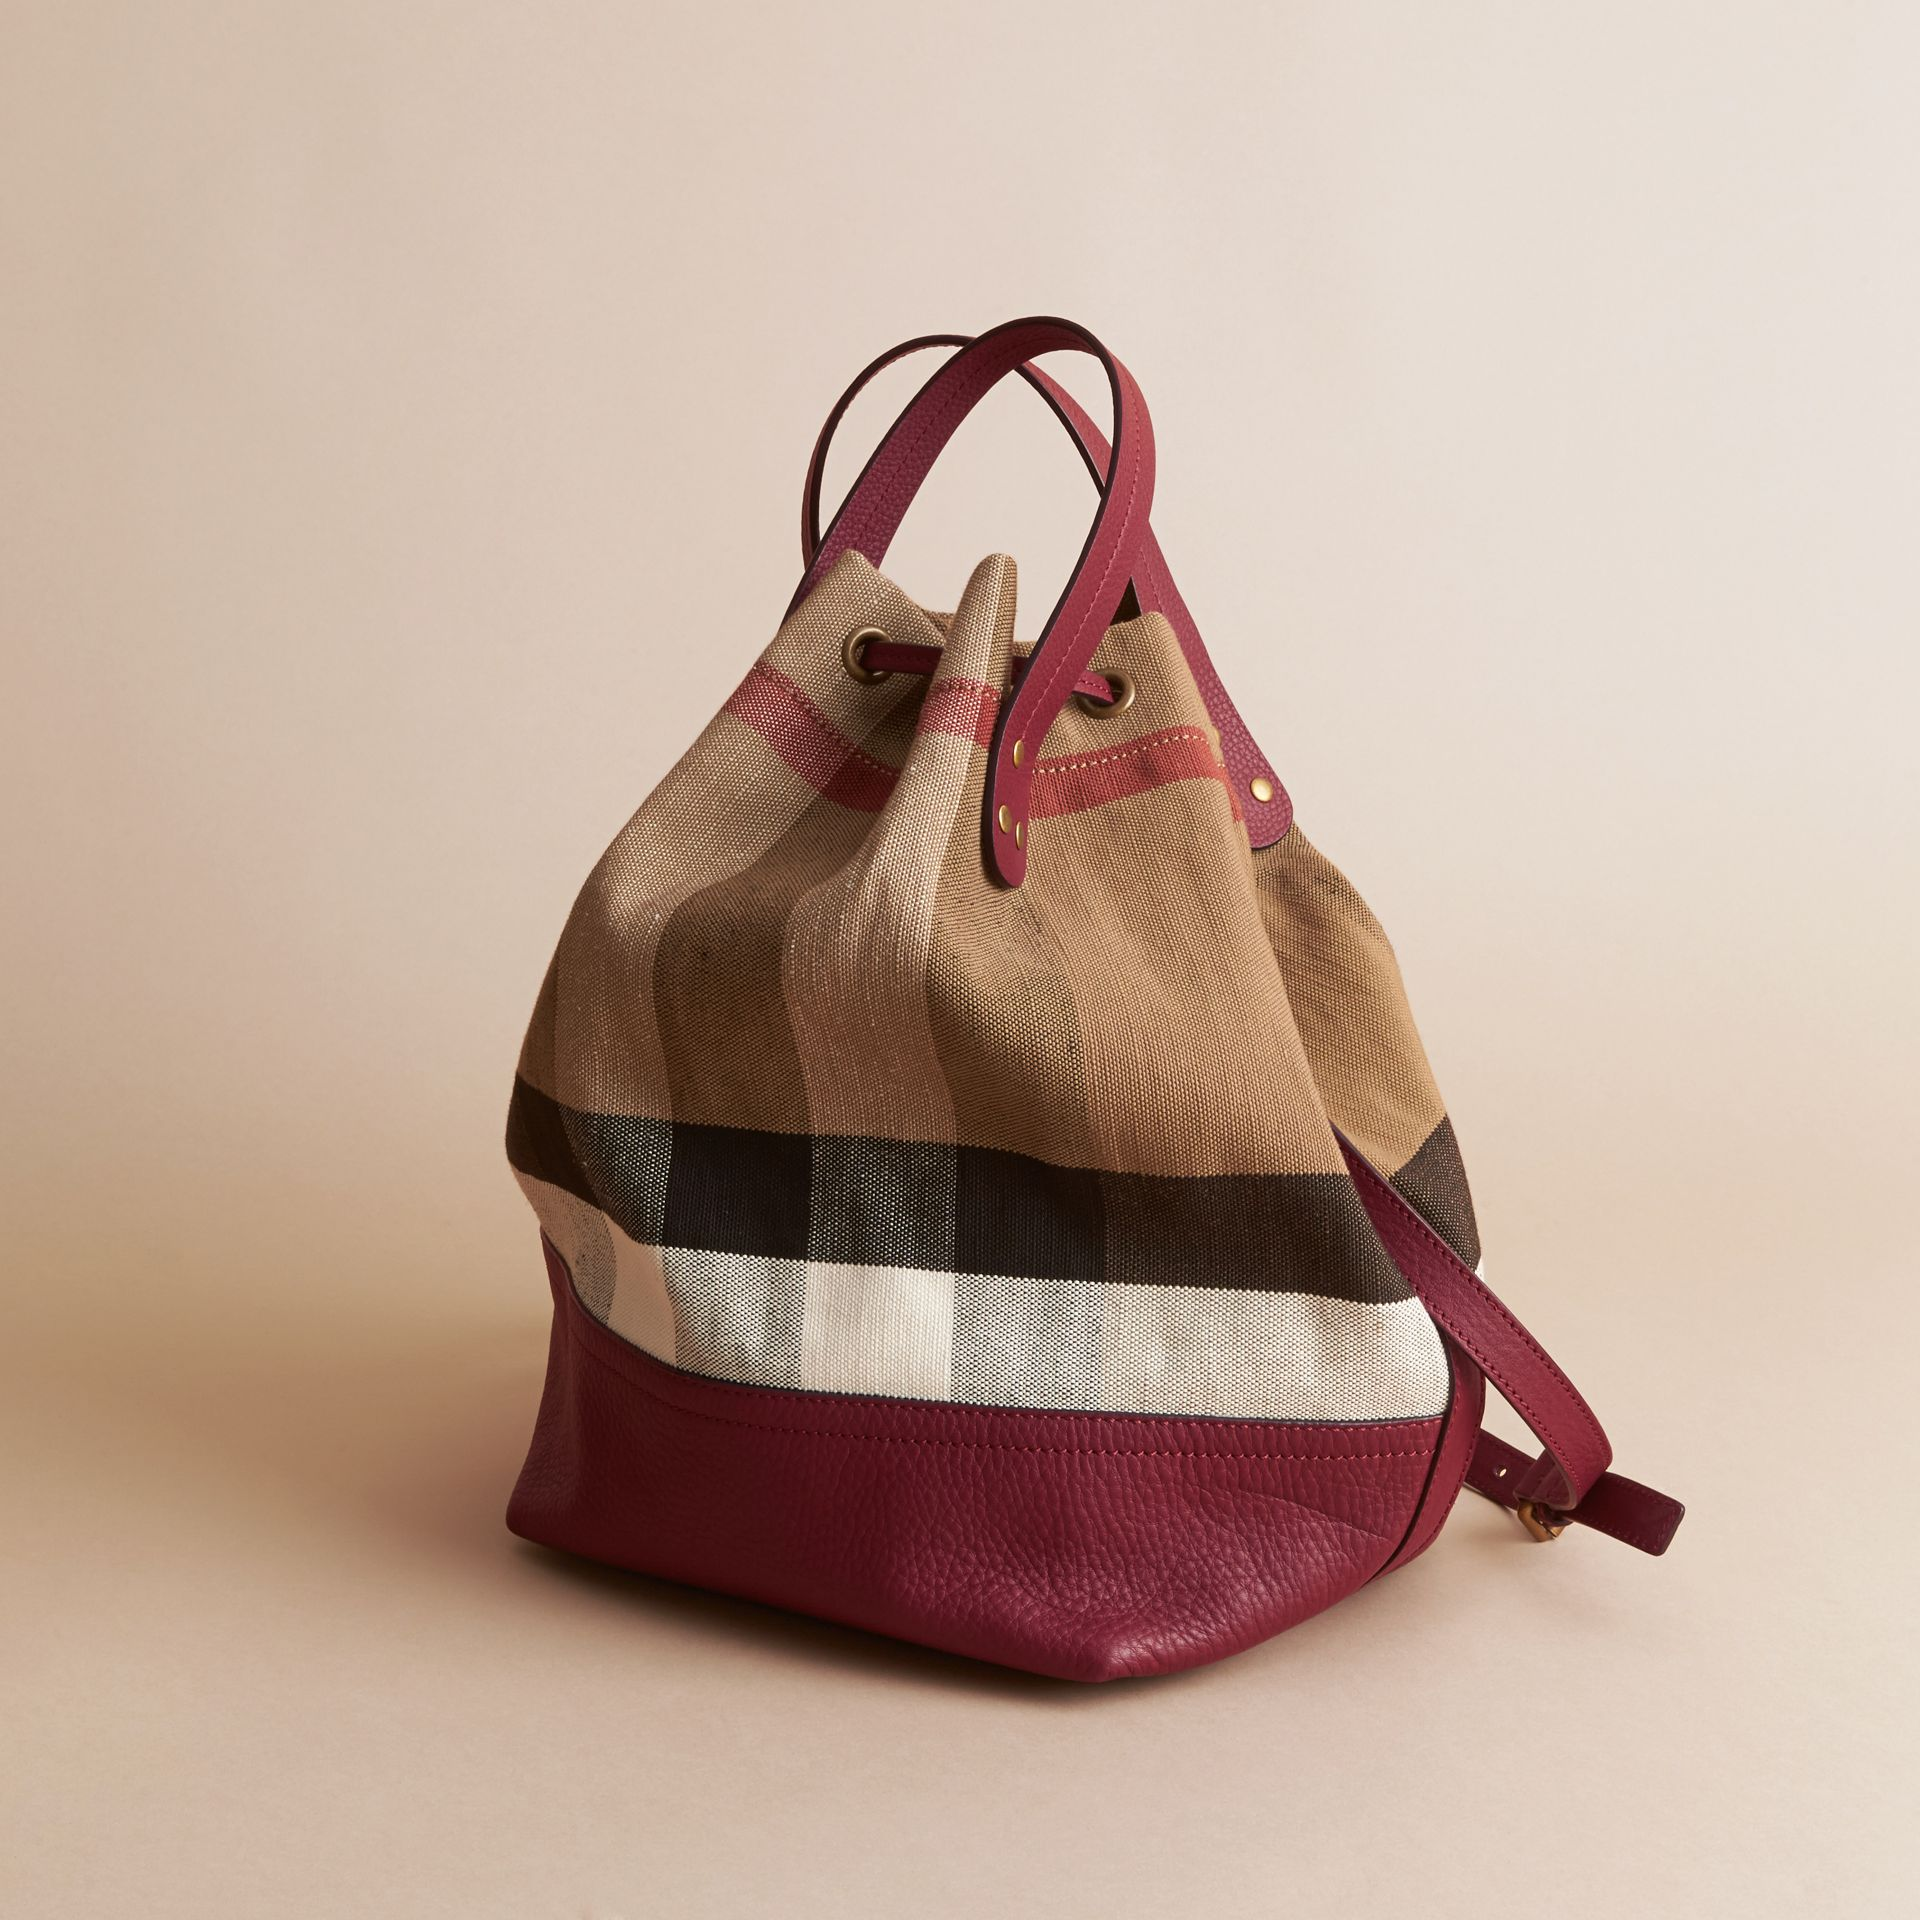 Medium Canvas Check and Leather Bucket Bag in Burgundy Red - Women | Burberry - gallery image 5